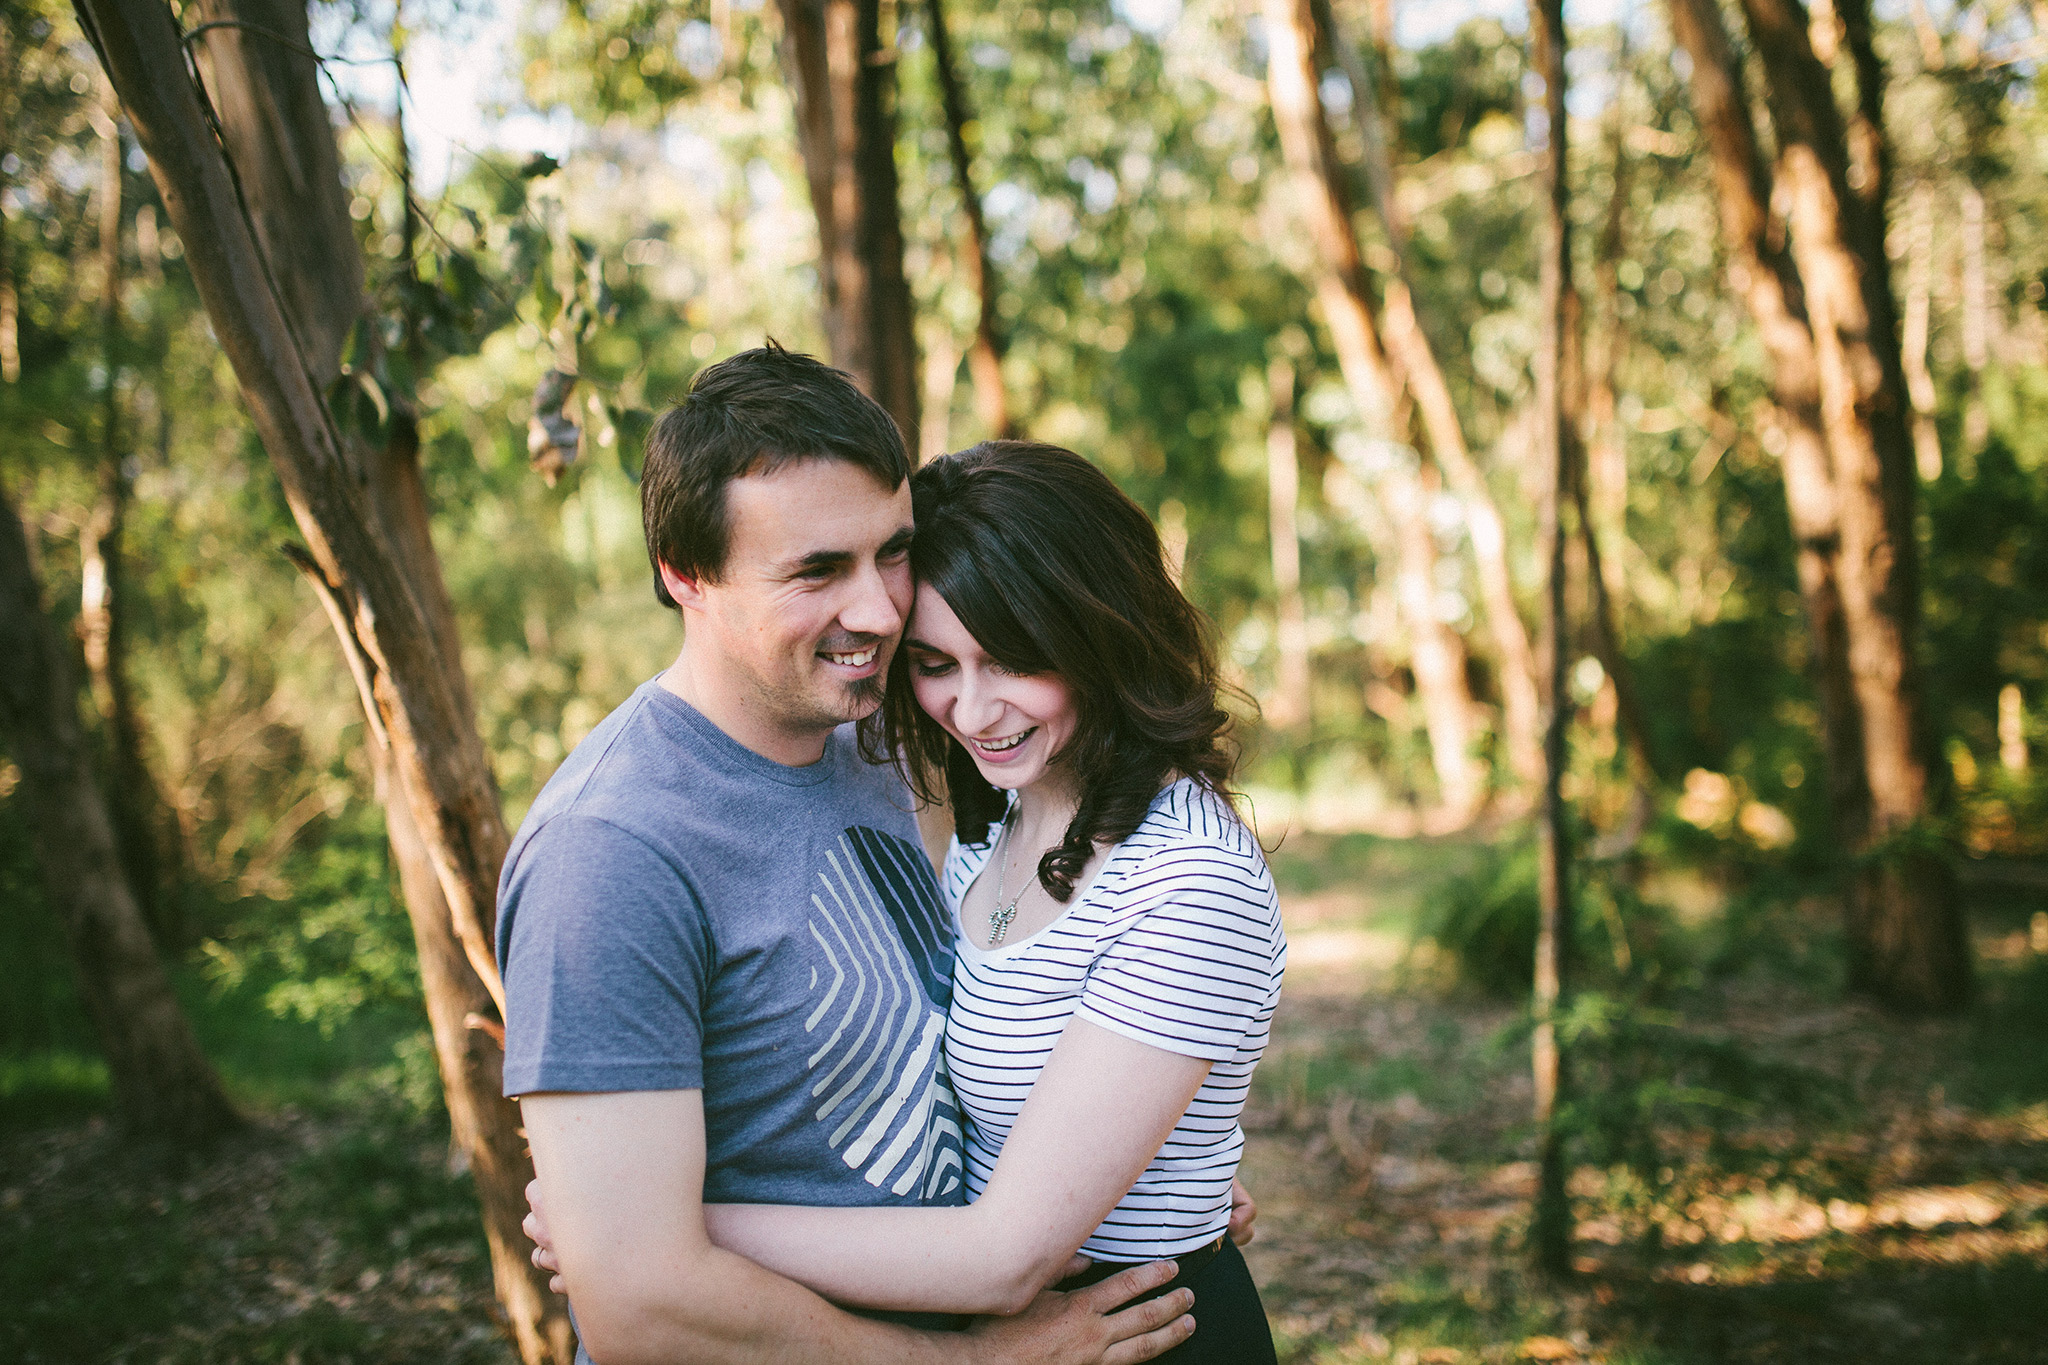 Nadia-Daniel-Melbourne-Quirky-Fun-Relaxed-Engagement-Session-Wedding-Photography_02